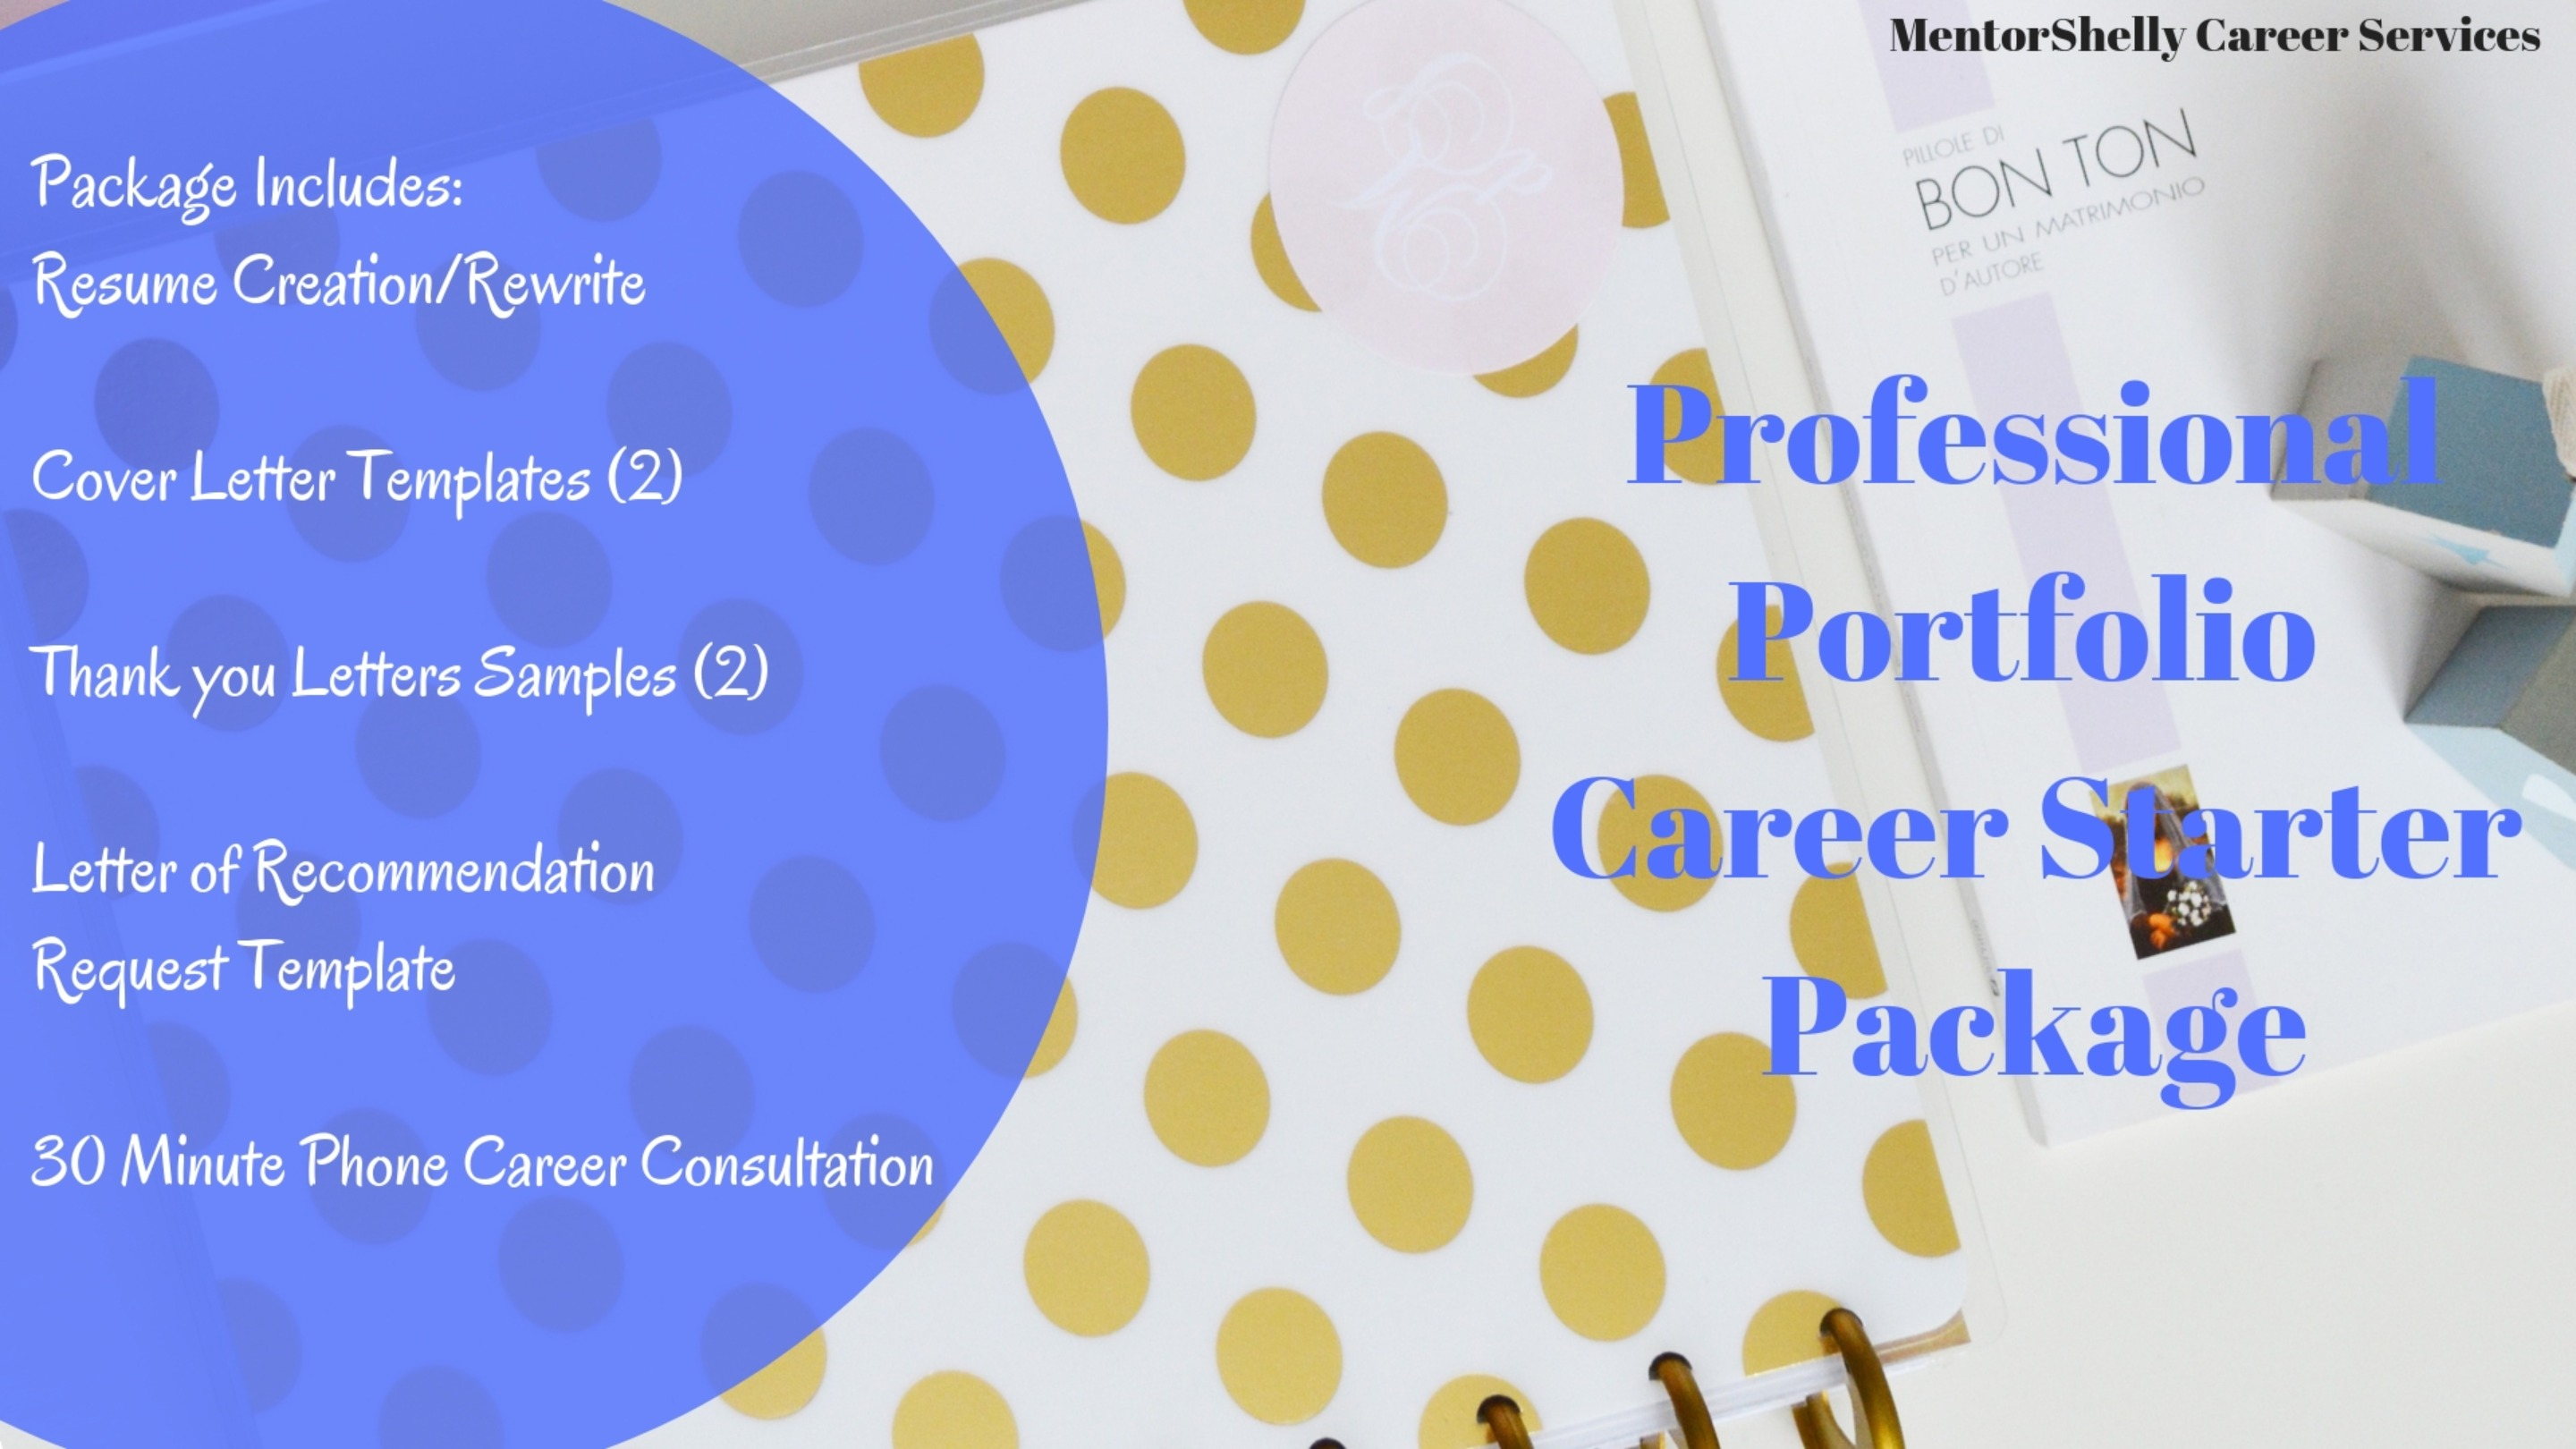 Career Starter Portfolio Package